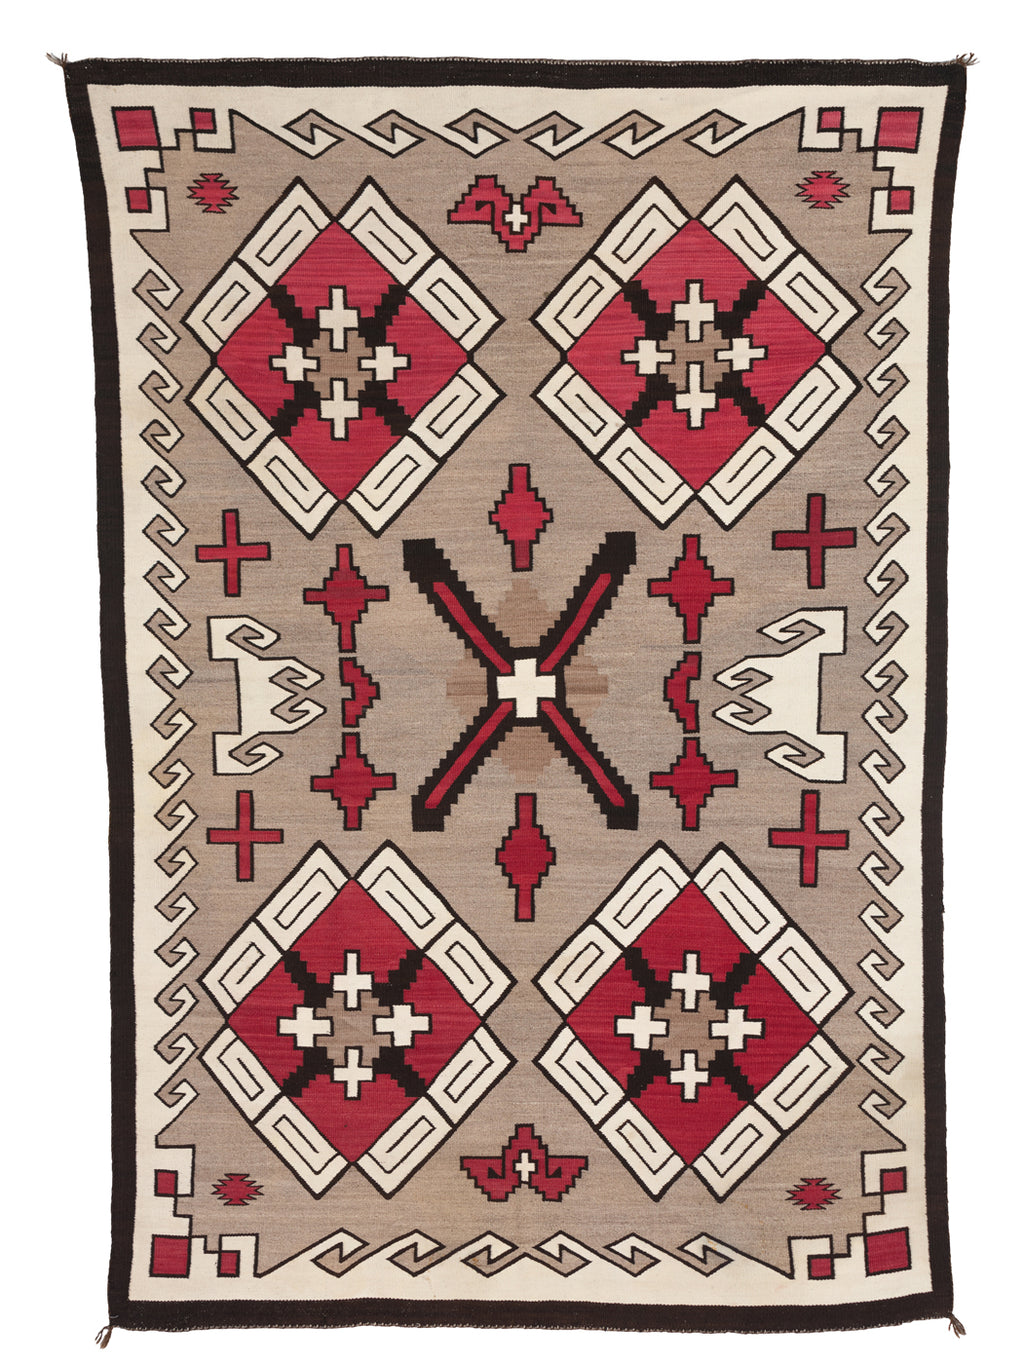 Klagetoh Navajo Rug : Antique Weaving : PC 106 - Getzwiller's Nizhoni Ranch Gallery